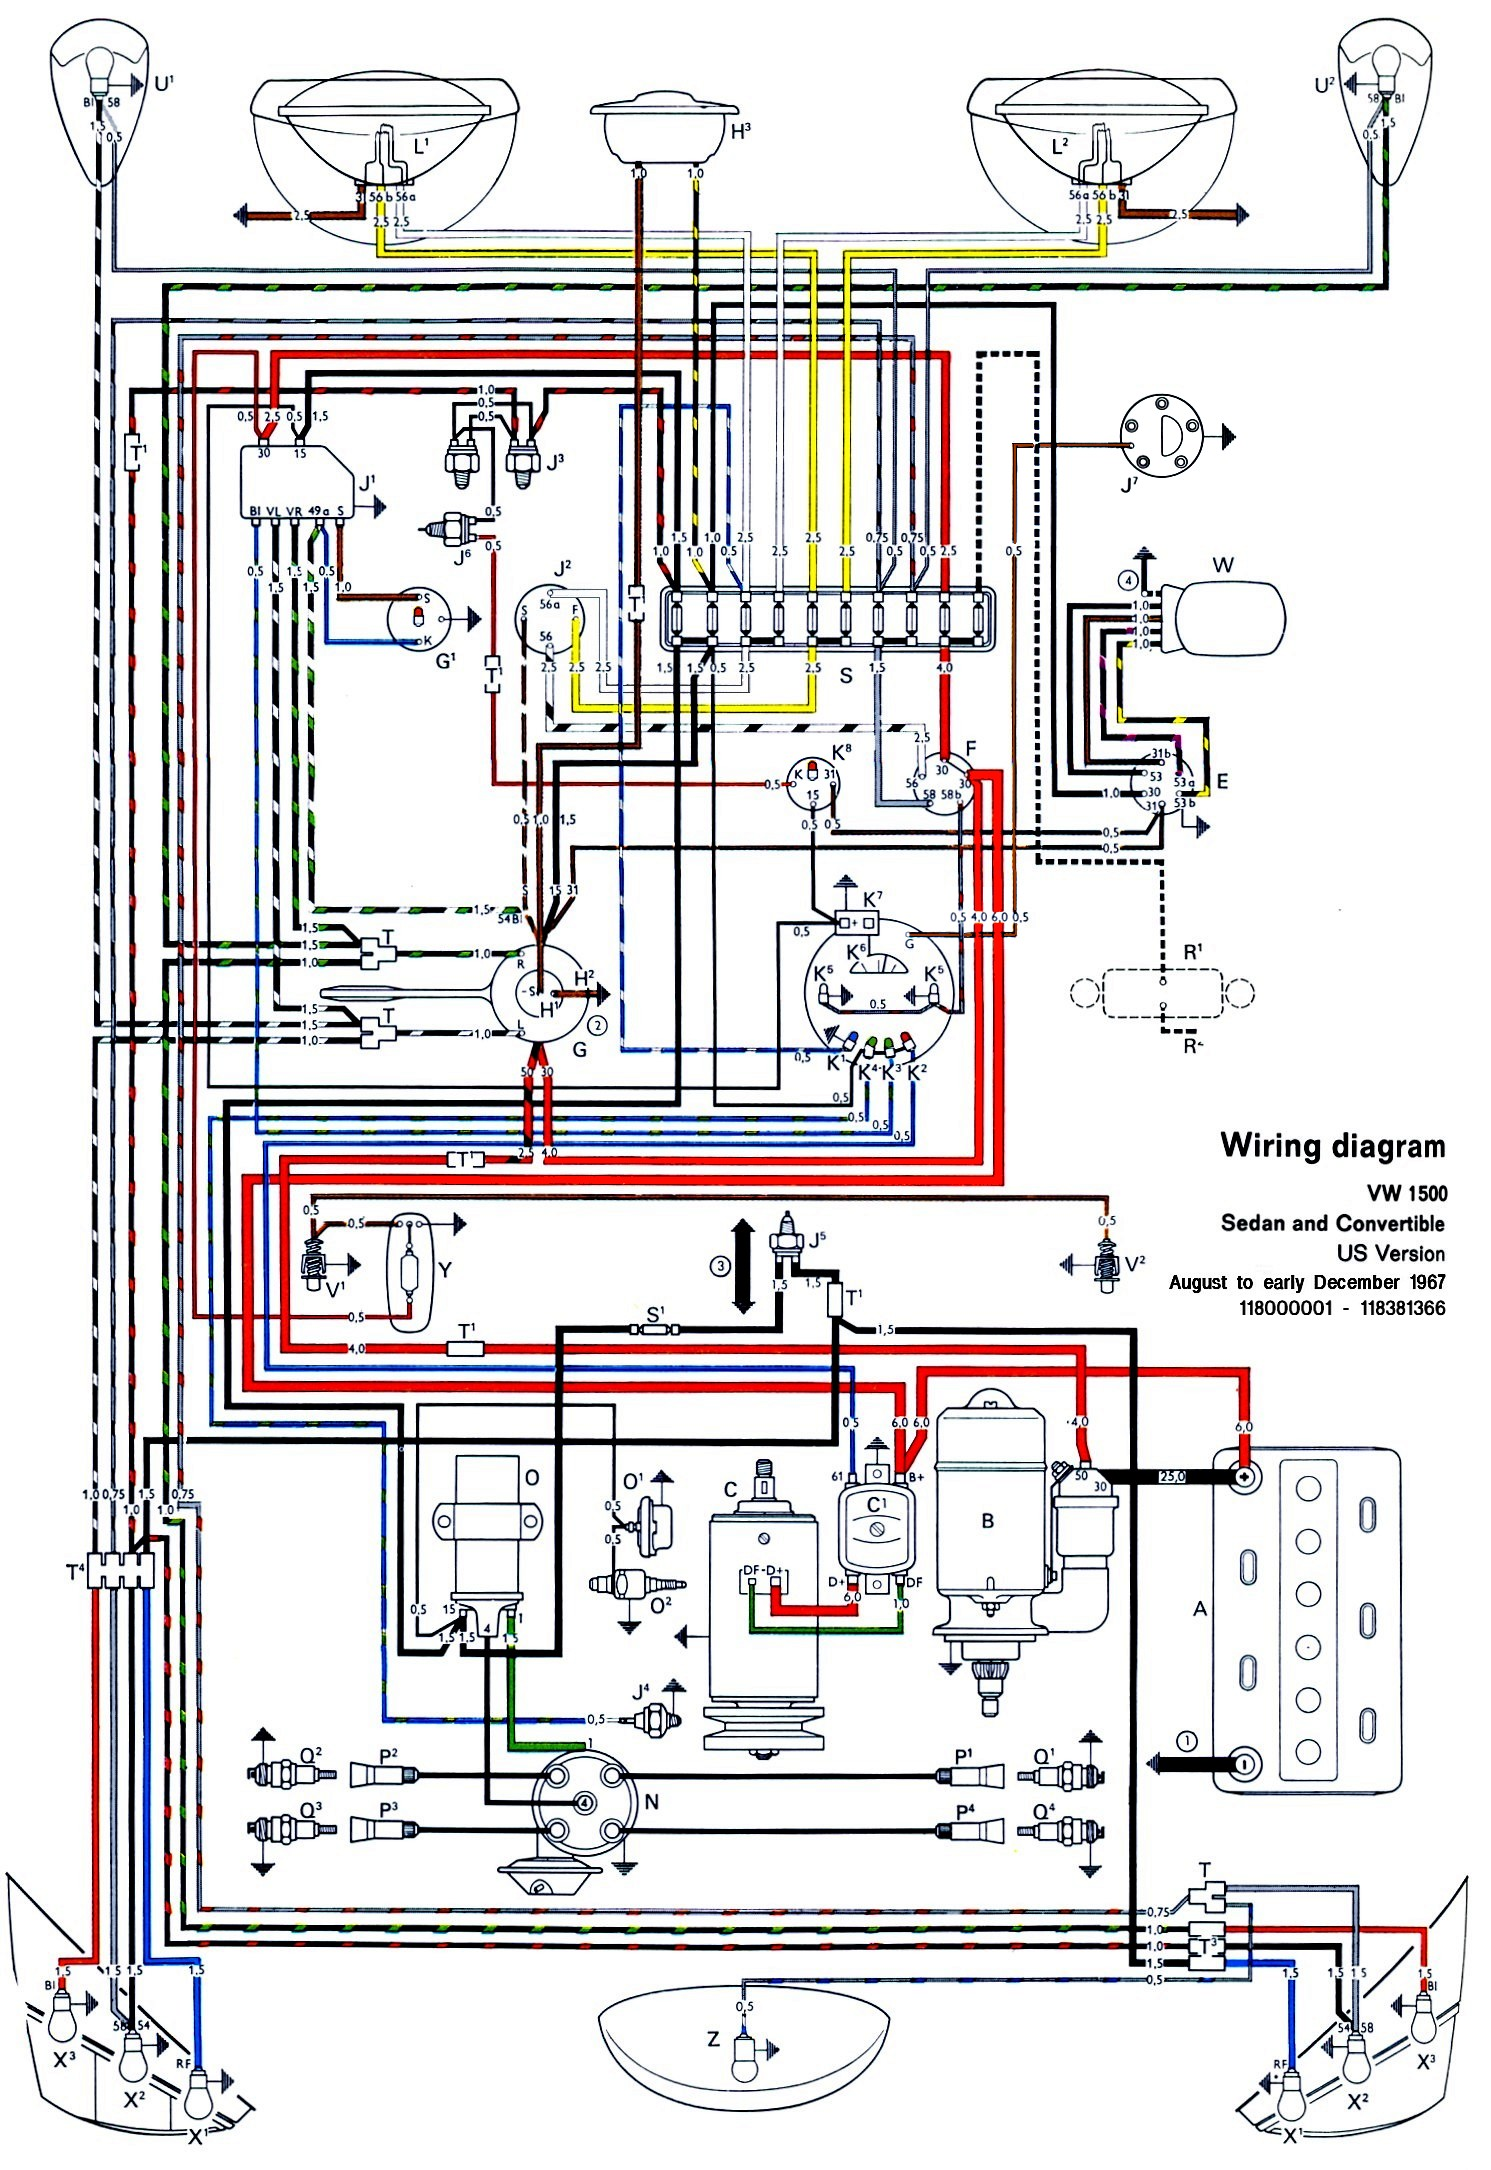 thesamba com 1971 bug wiring diagram html